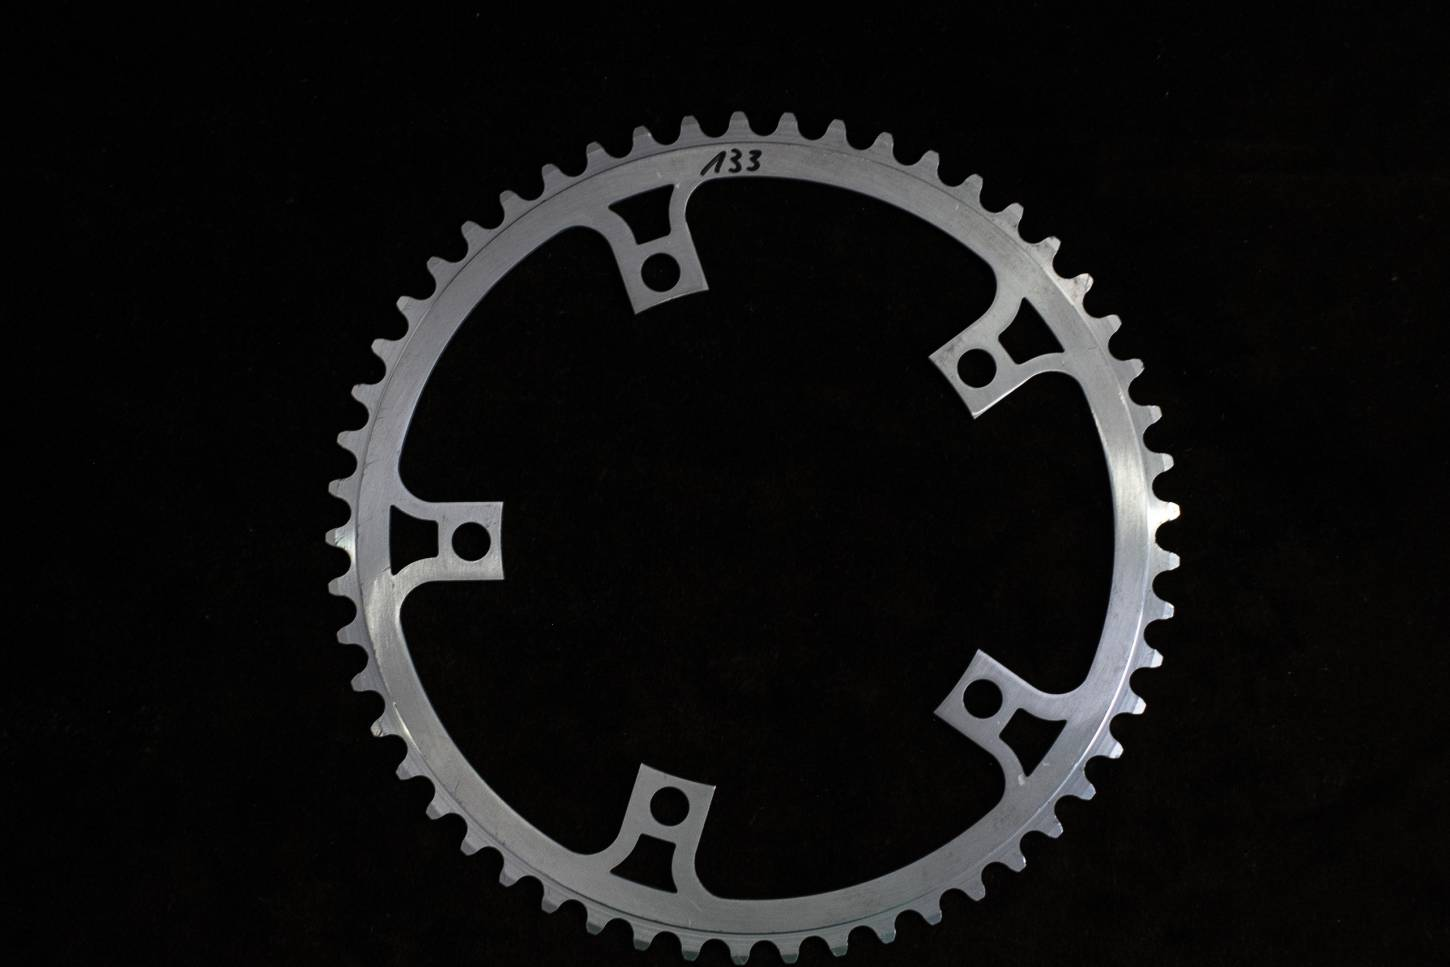 Ofmega chainring / chainring 144 LK 53 teeth